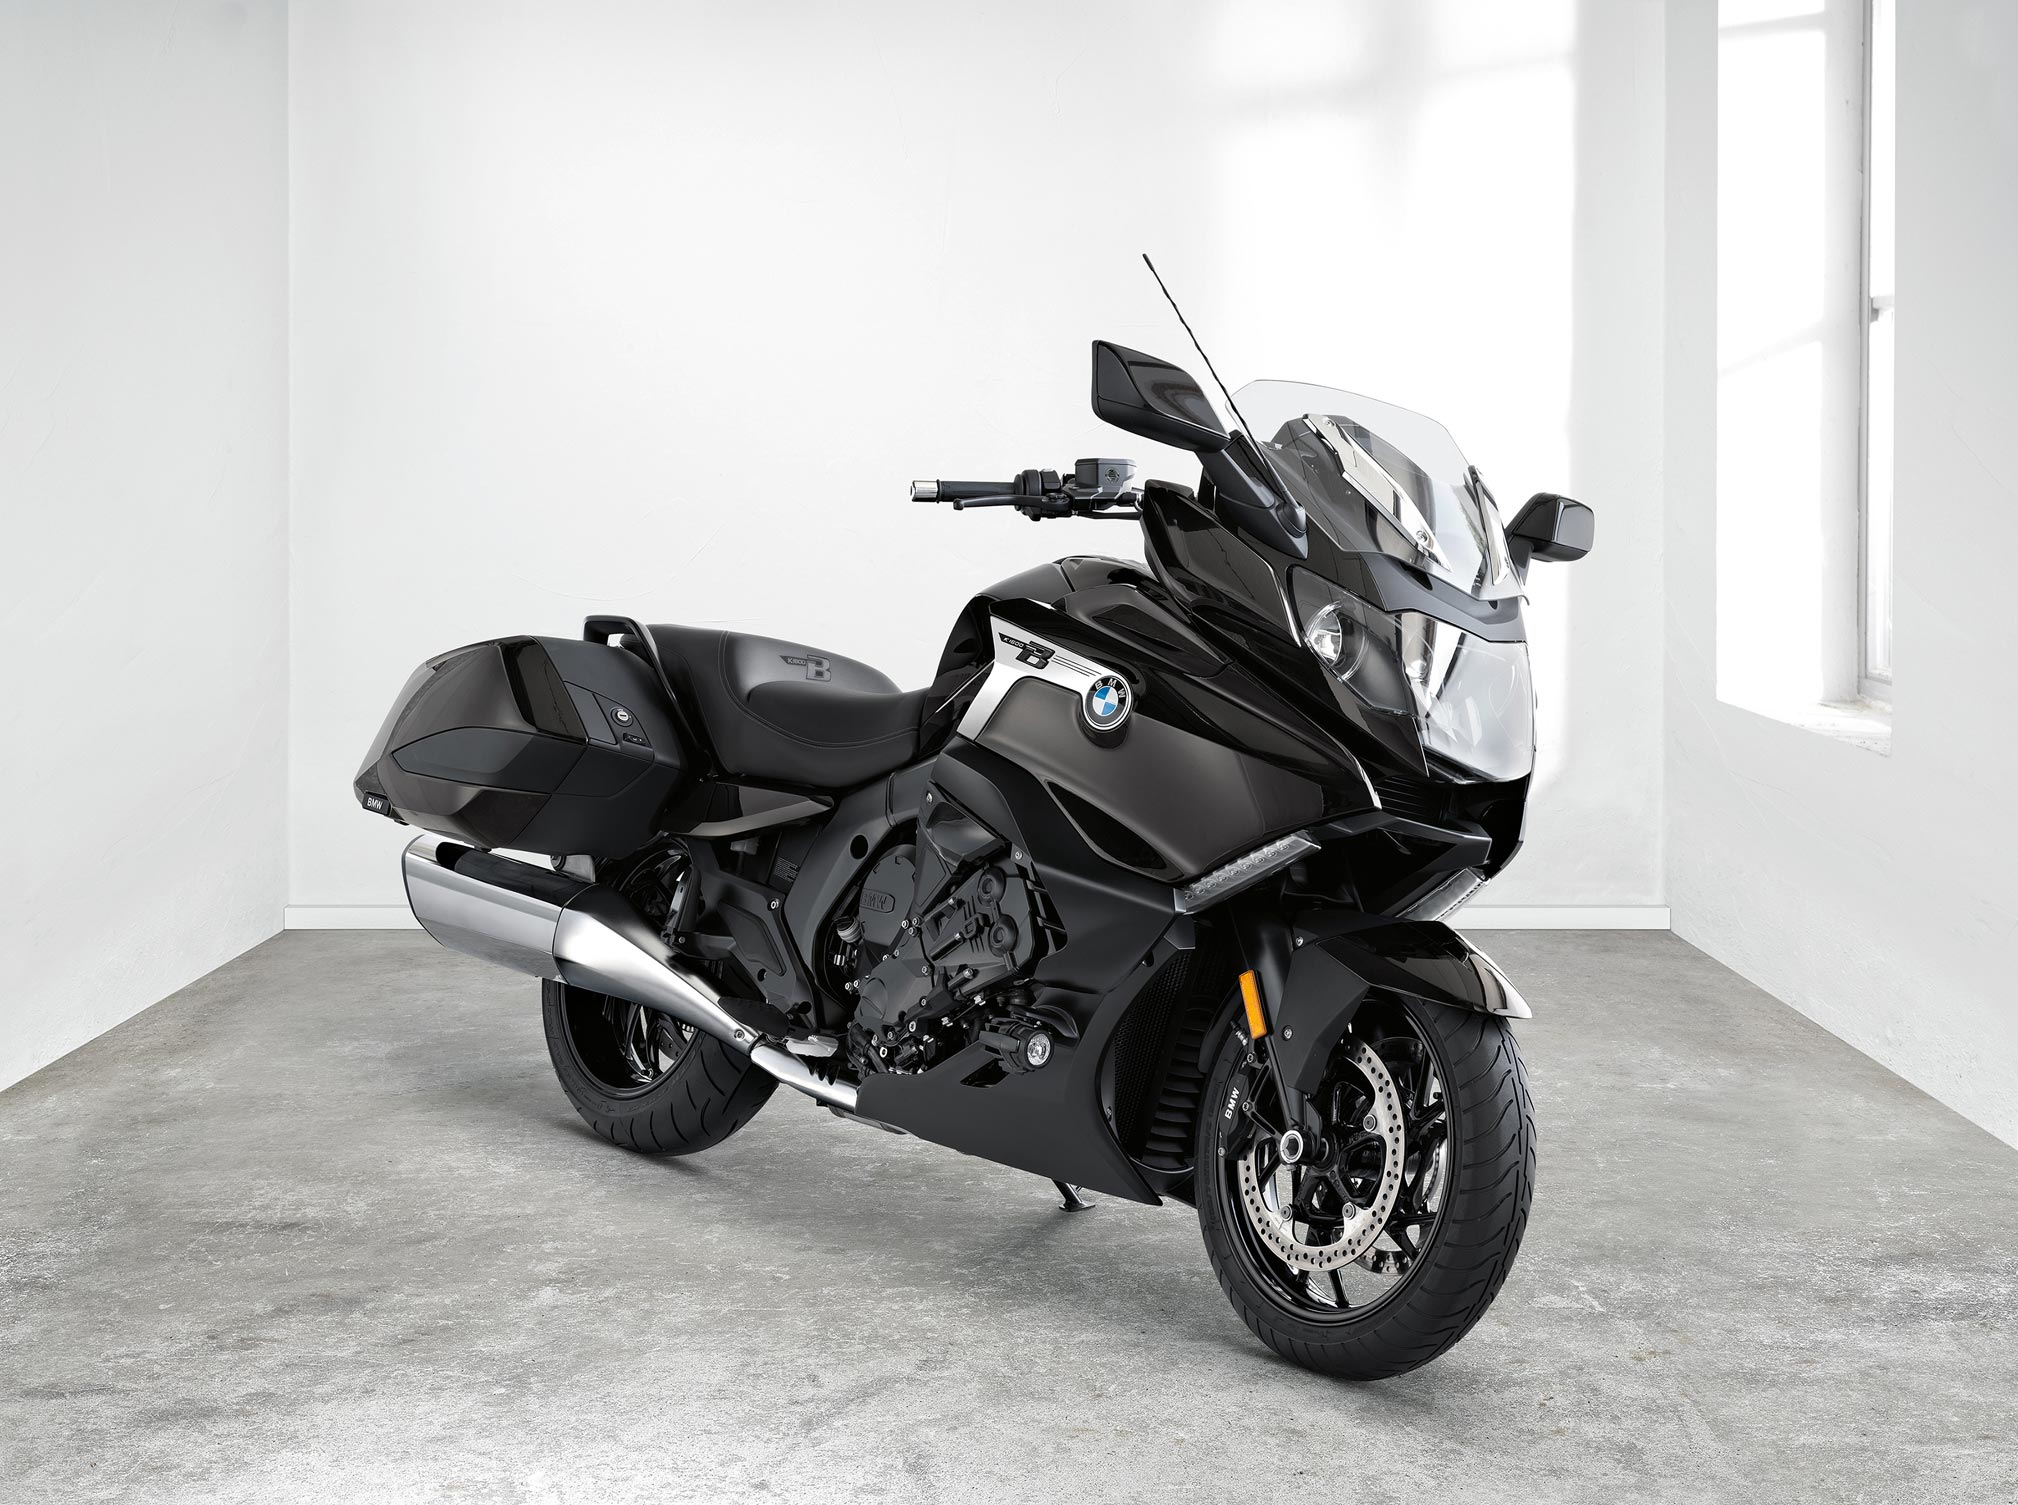 2018 BMW K1600B Review | TotalMotorcycle